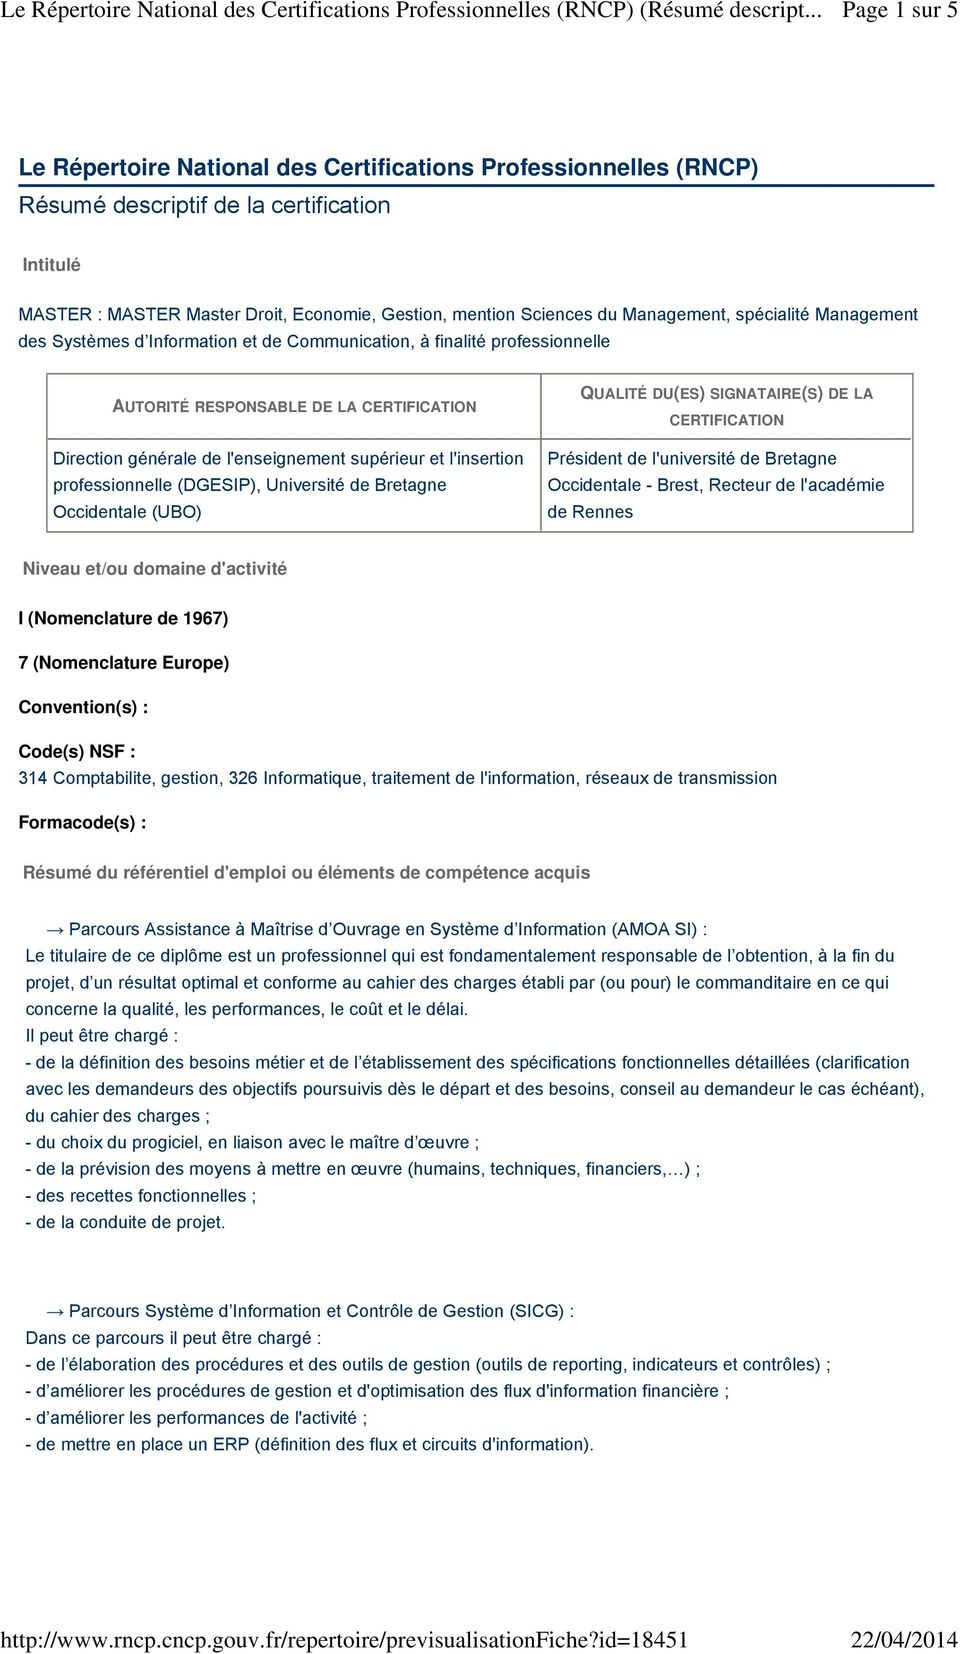 l'insertion professionnelle (DGESIP), Université de Bretagne Occidentale (UBO) QUALITÉ DU(ES) SIGNATAIRE(S) DE LA CERTIFICATION Président de l'université de Bretagne Occidentale - Brest, Recteur de